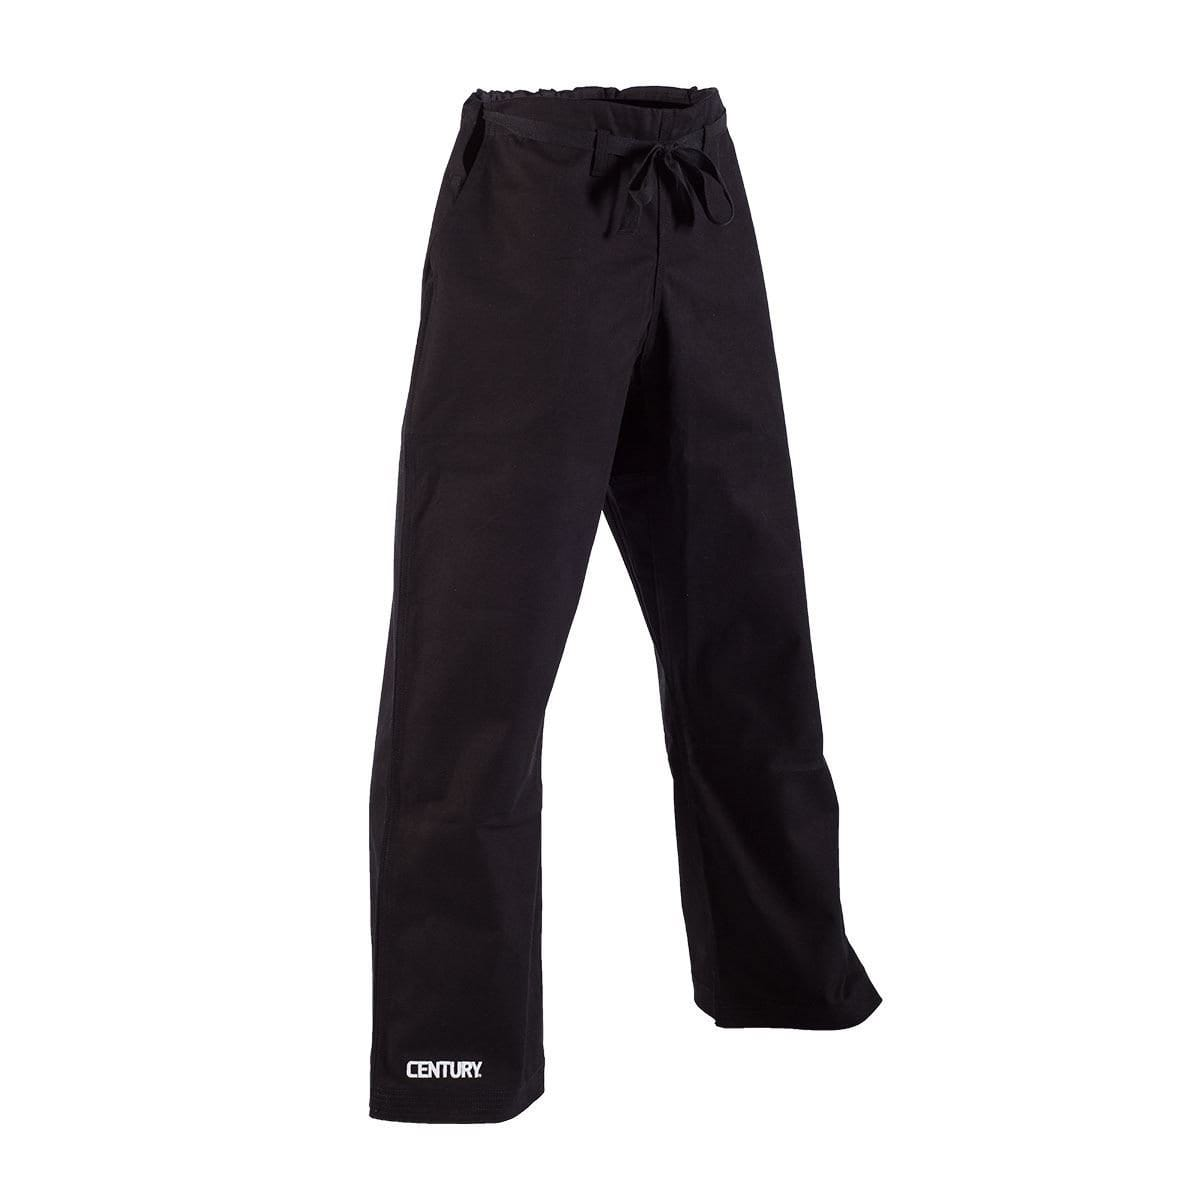 Century 10 oz. Middleweight Brushed Cotton Pants with Pockets - Traditional Waist - BlackBeltShop